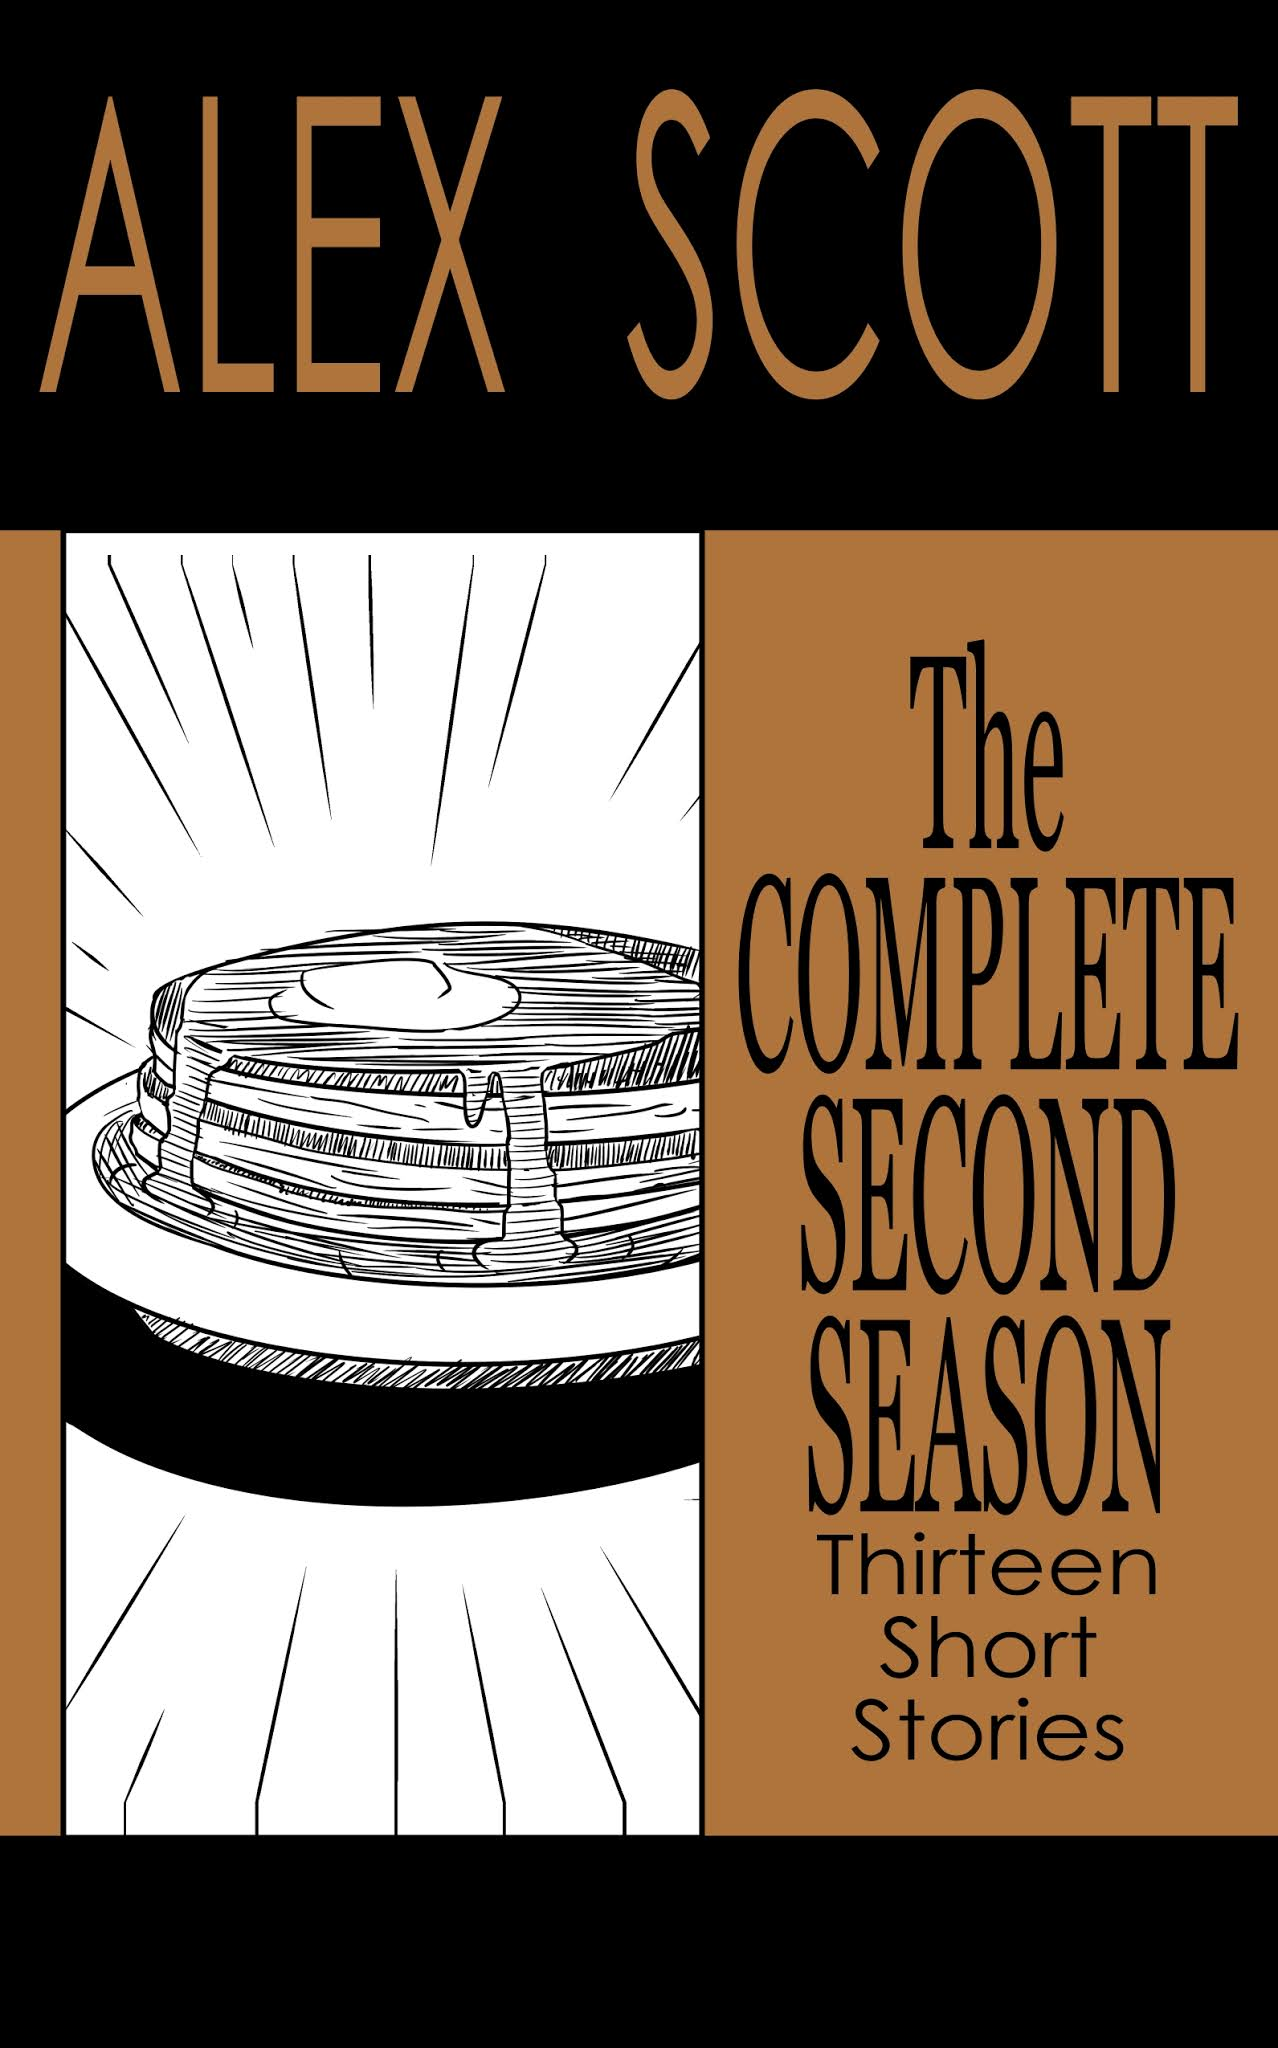 The Complete Second Season